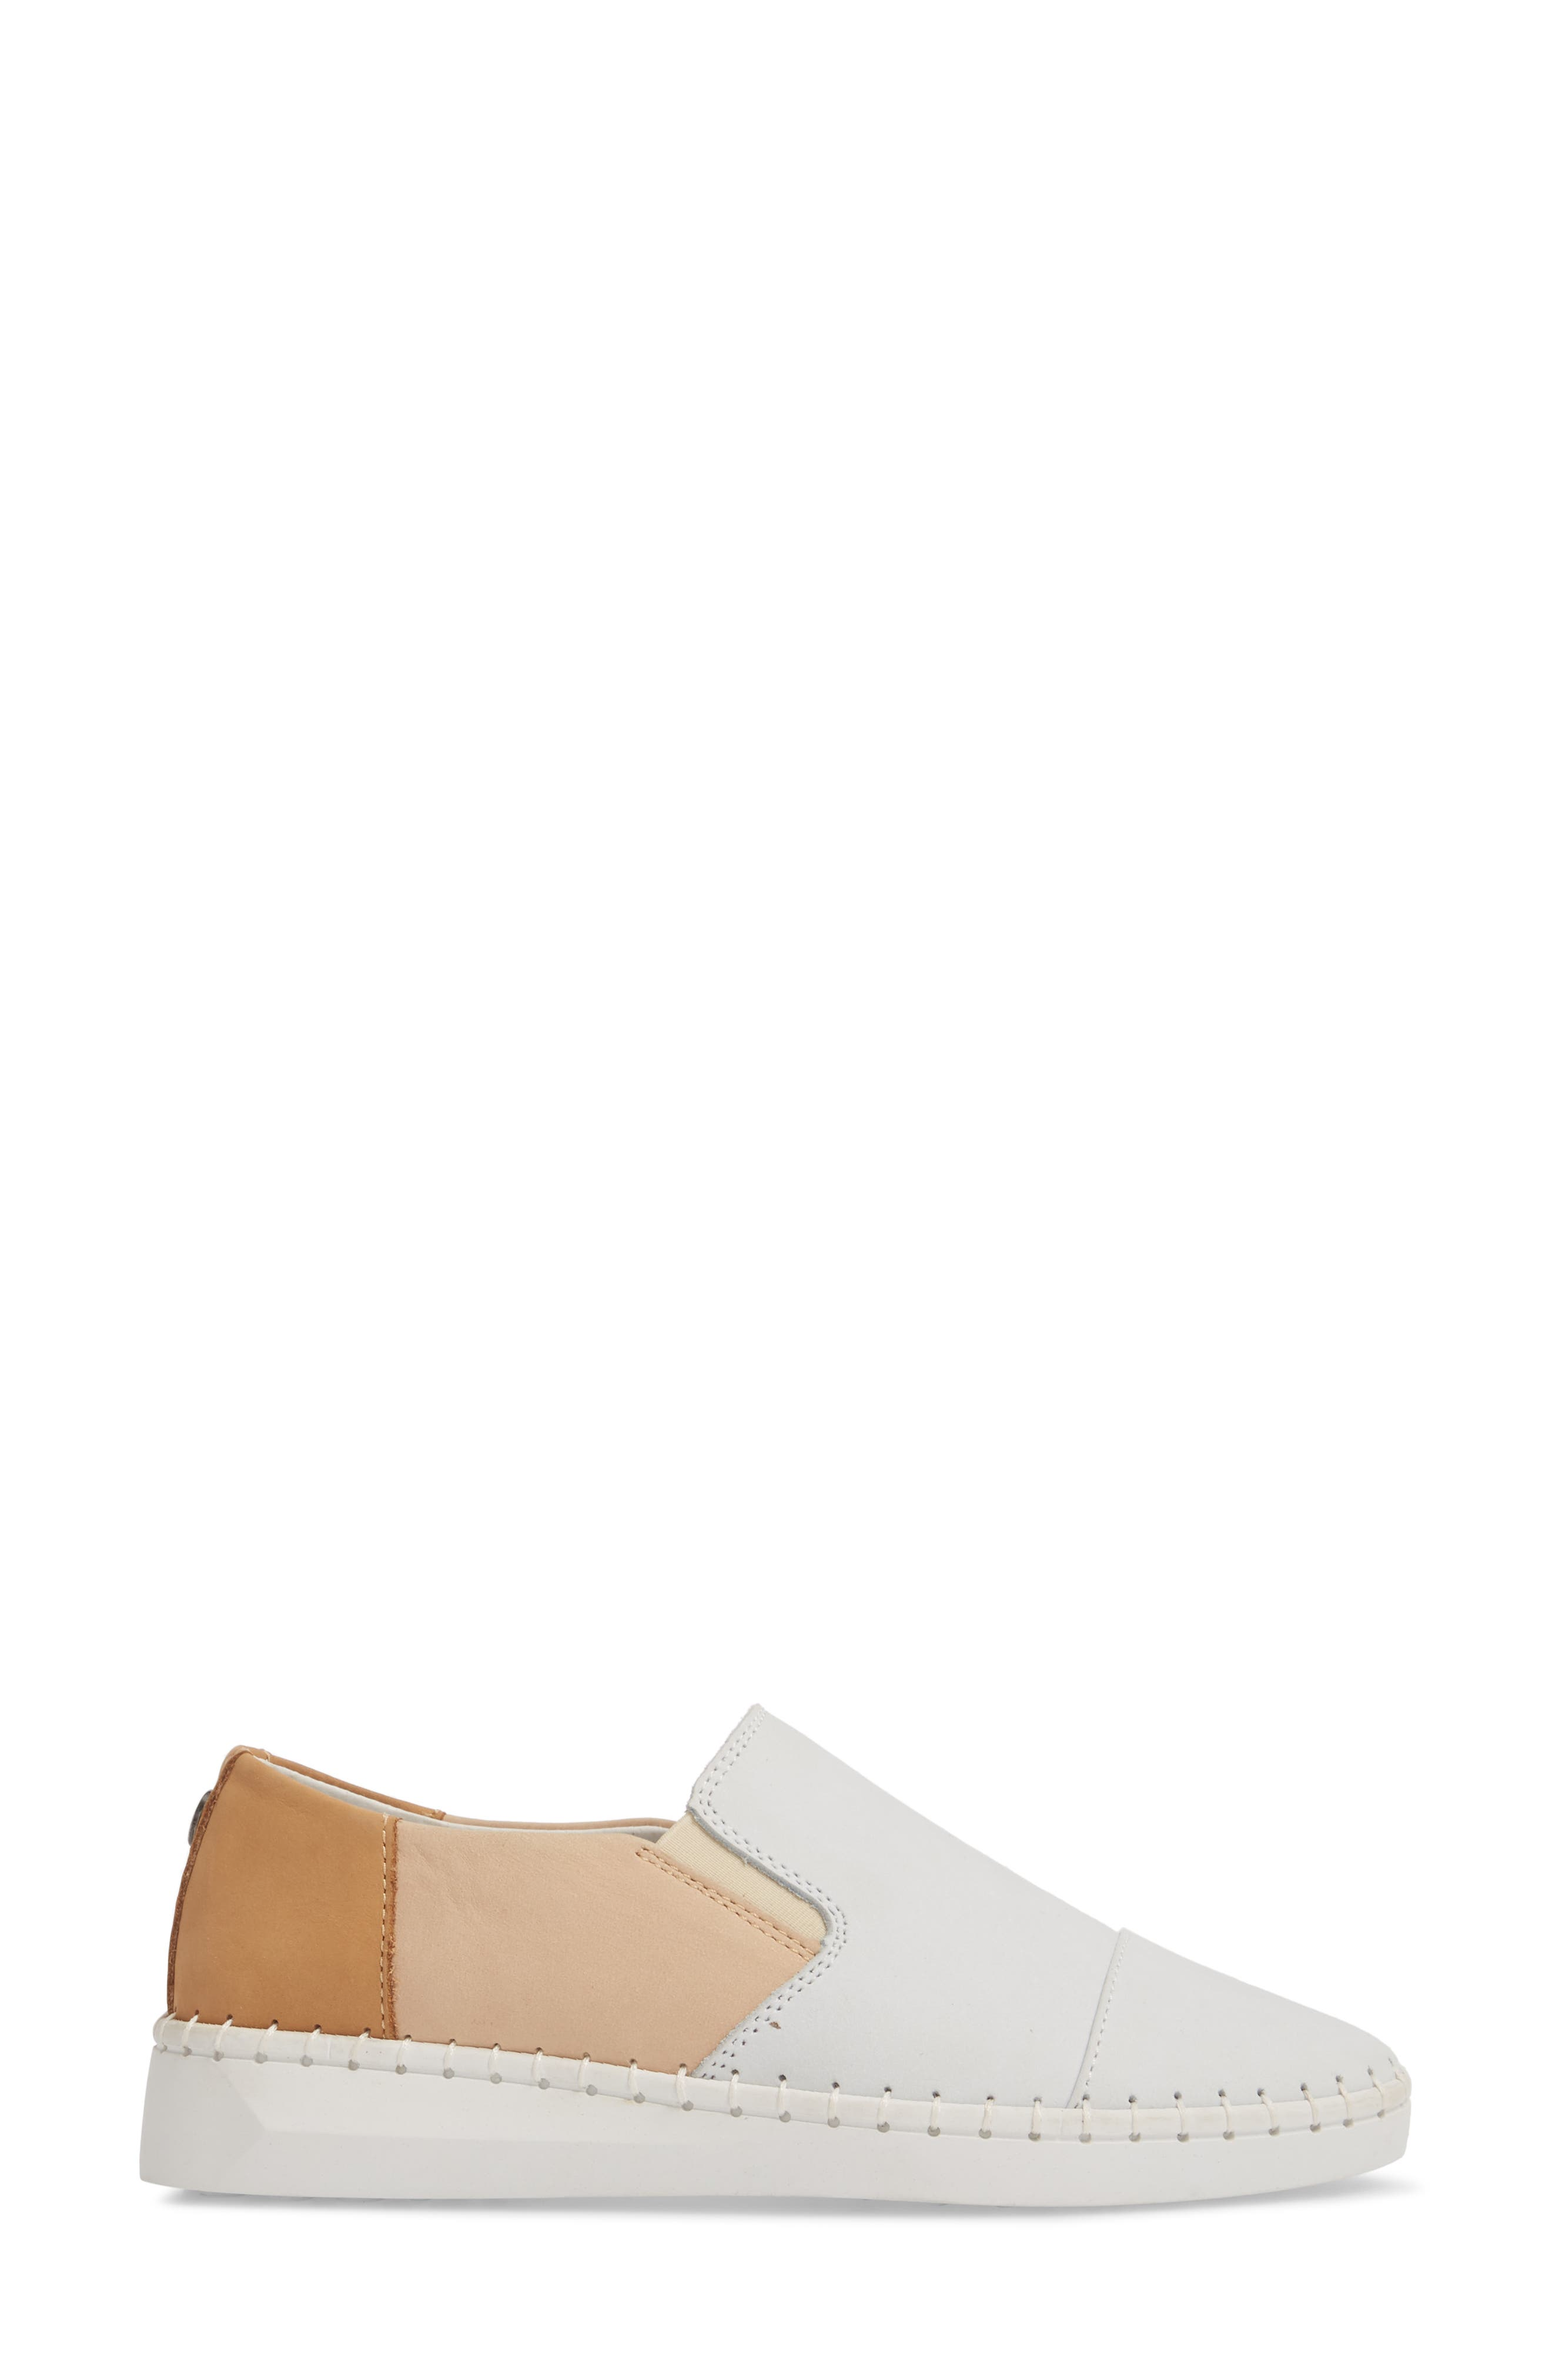 TW107 Slip-On Flat,                             Alternate thumbnail 3, color,                             NUDE MIX LEATHER